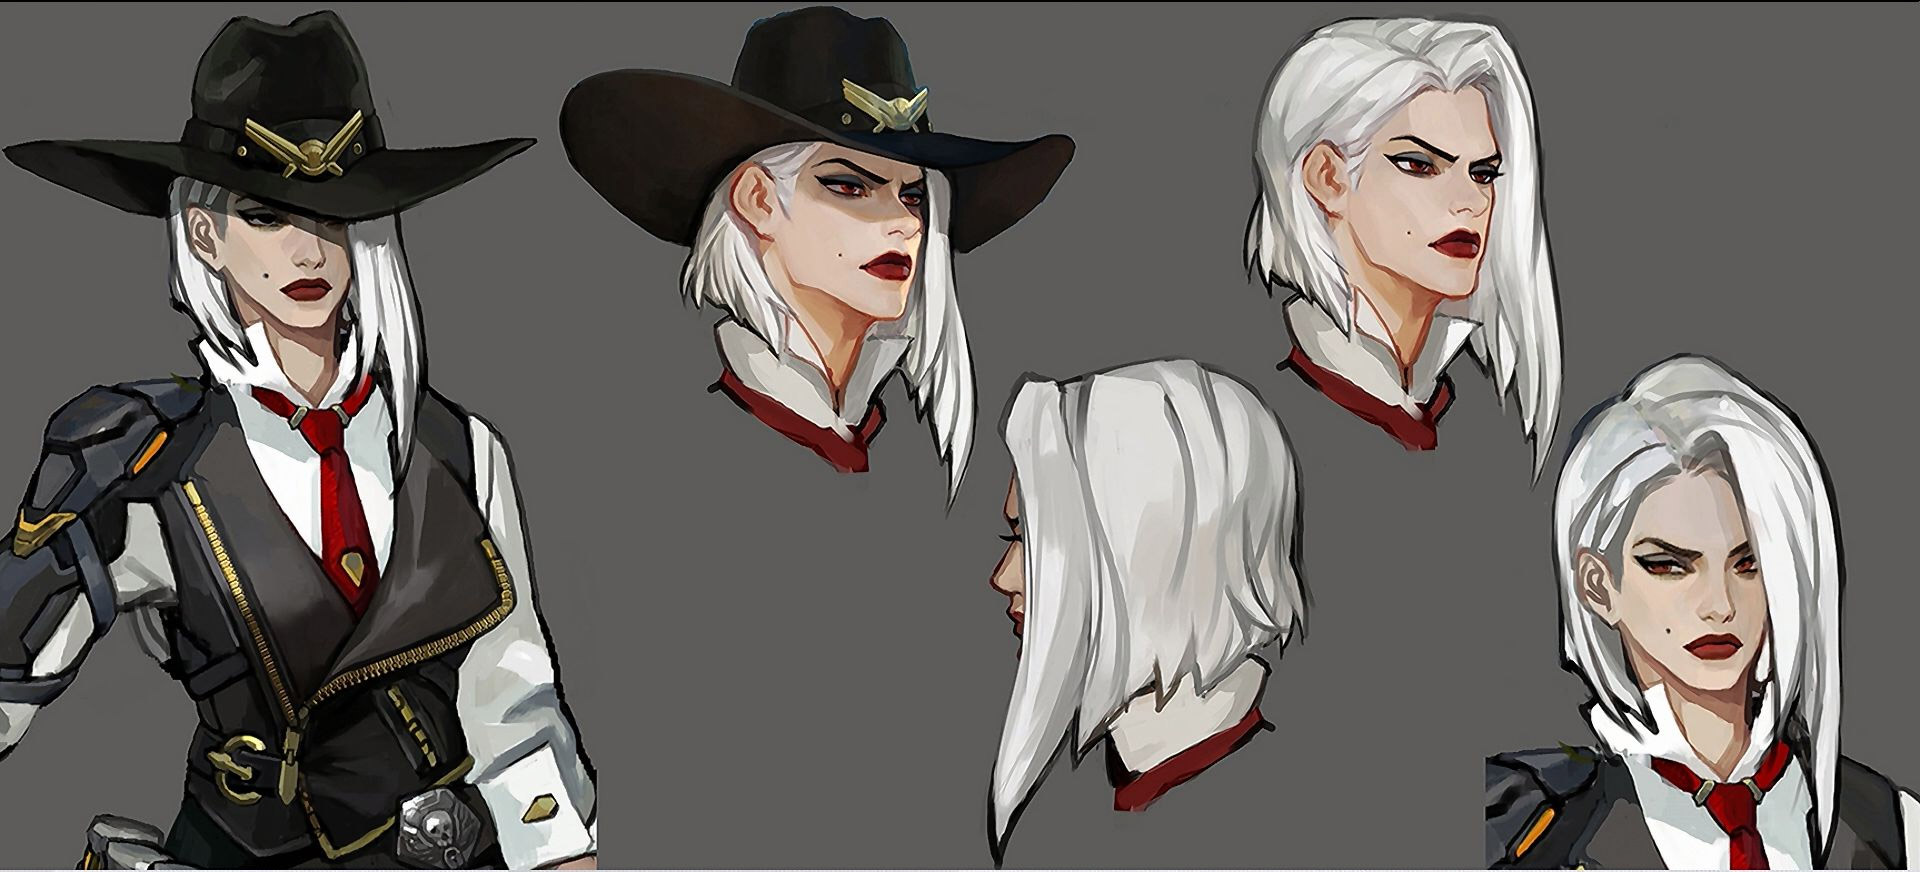 Finalisation du personnage Ashe d'Overwatch